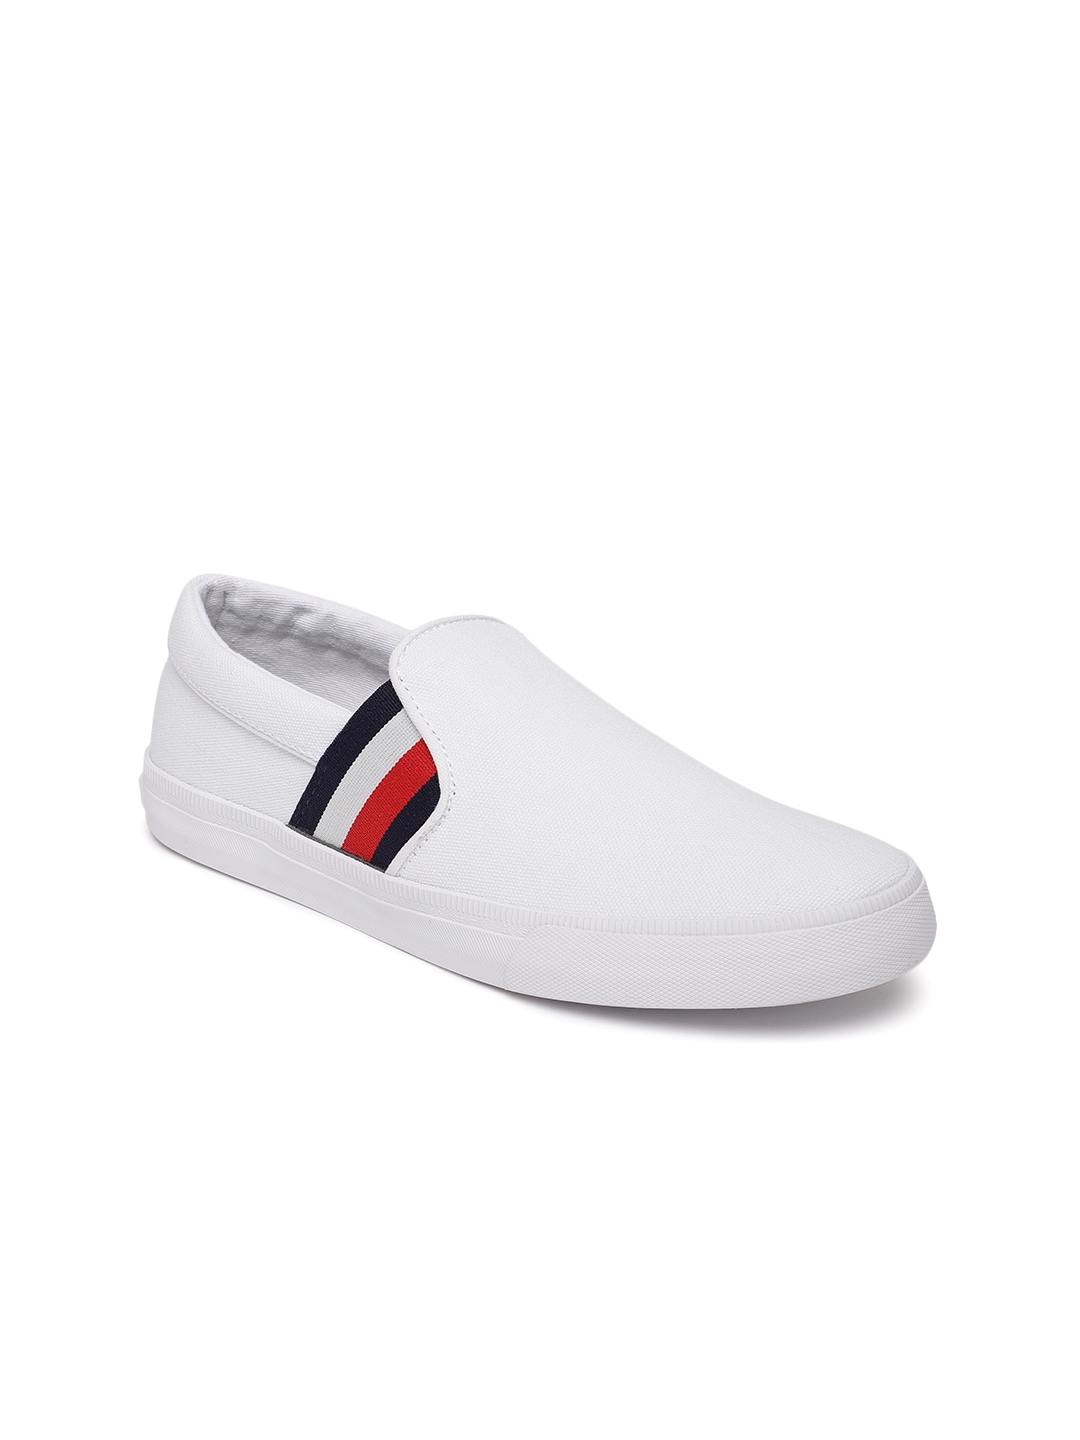 a23fdb51da Buy Tommy Hilfiger Women White Liman A Slip On Sneakers - Casual ...